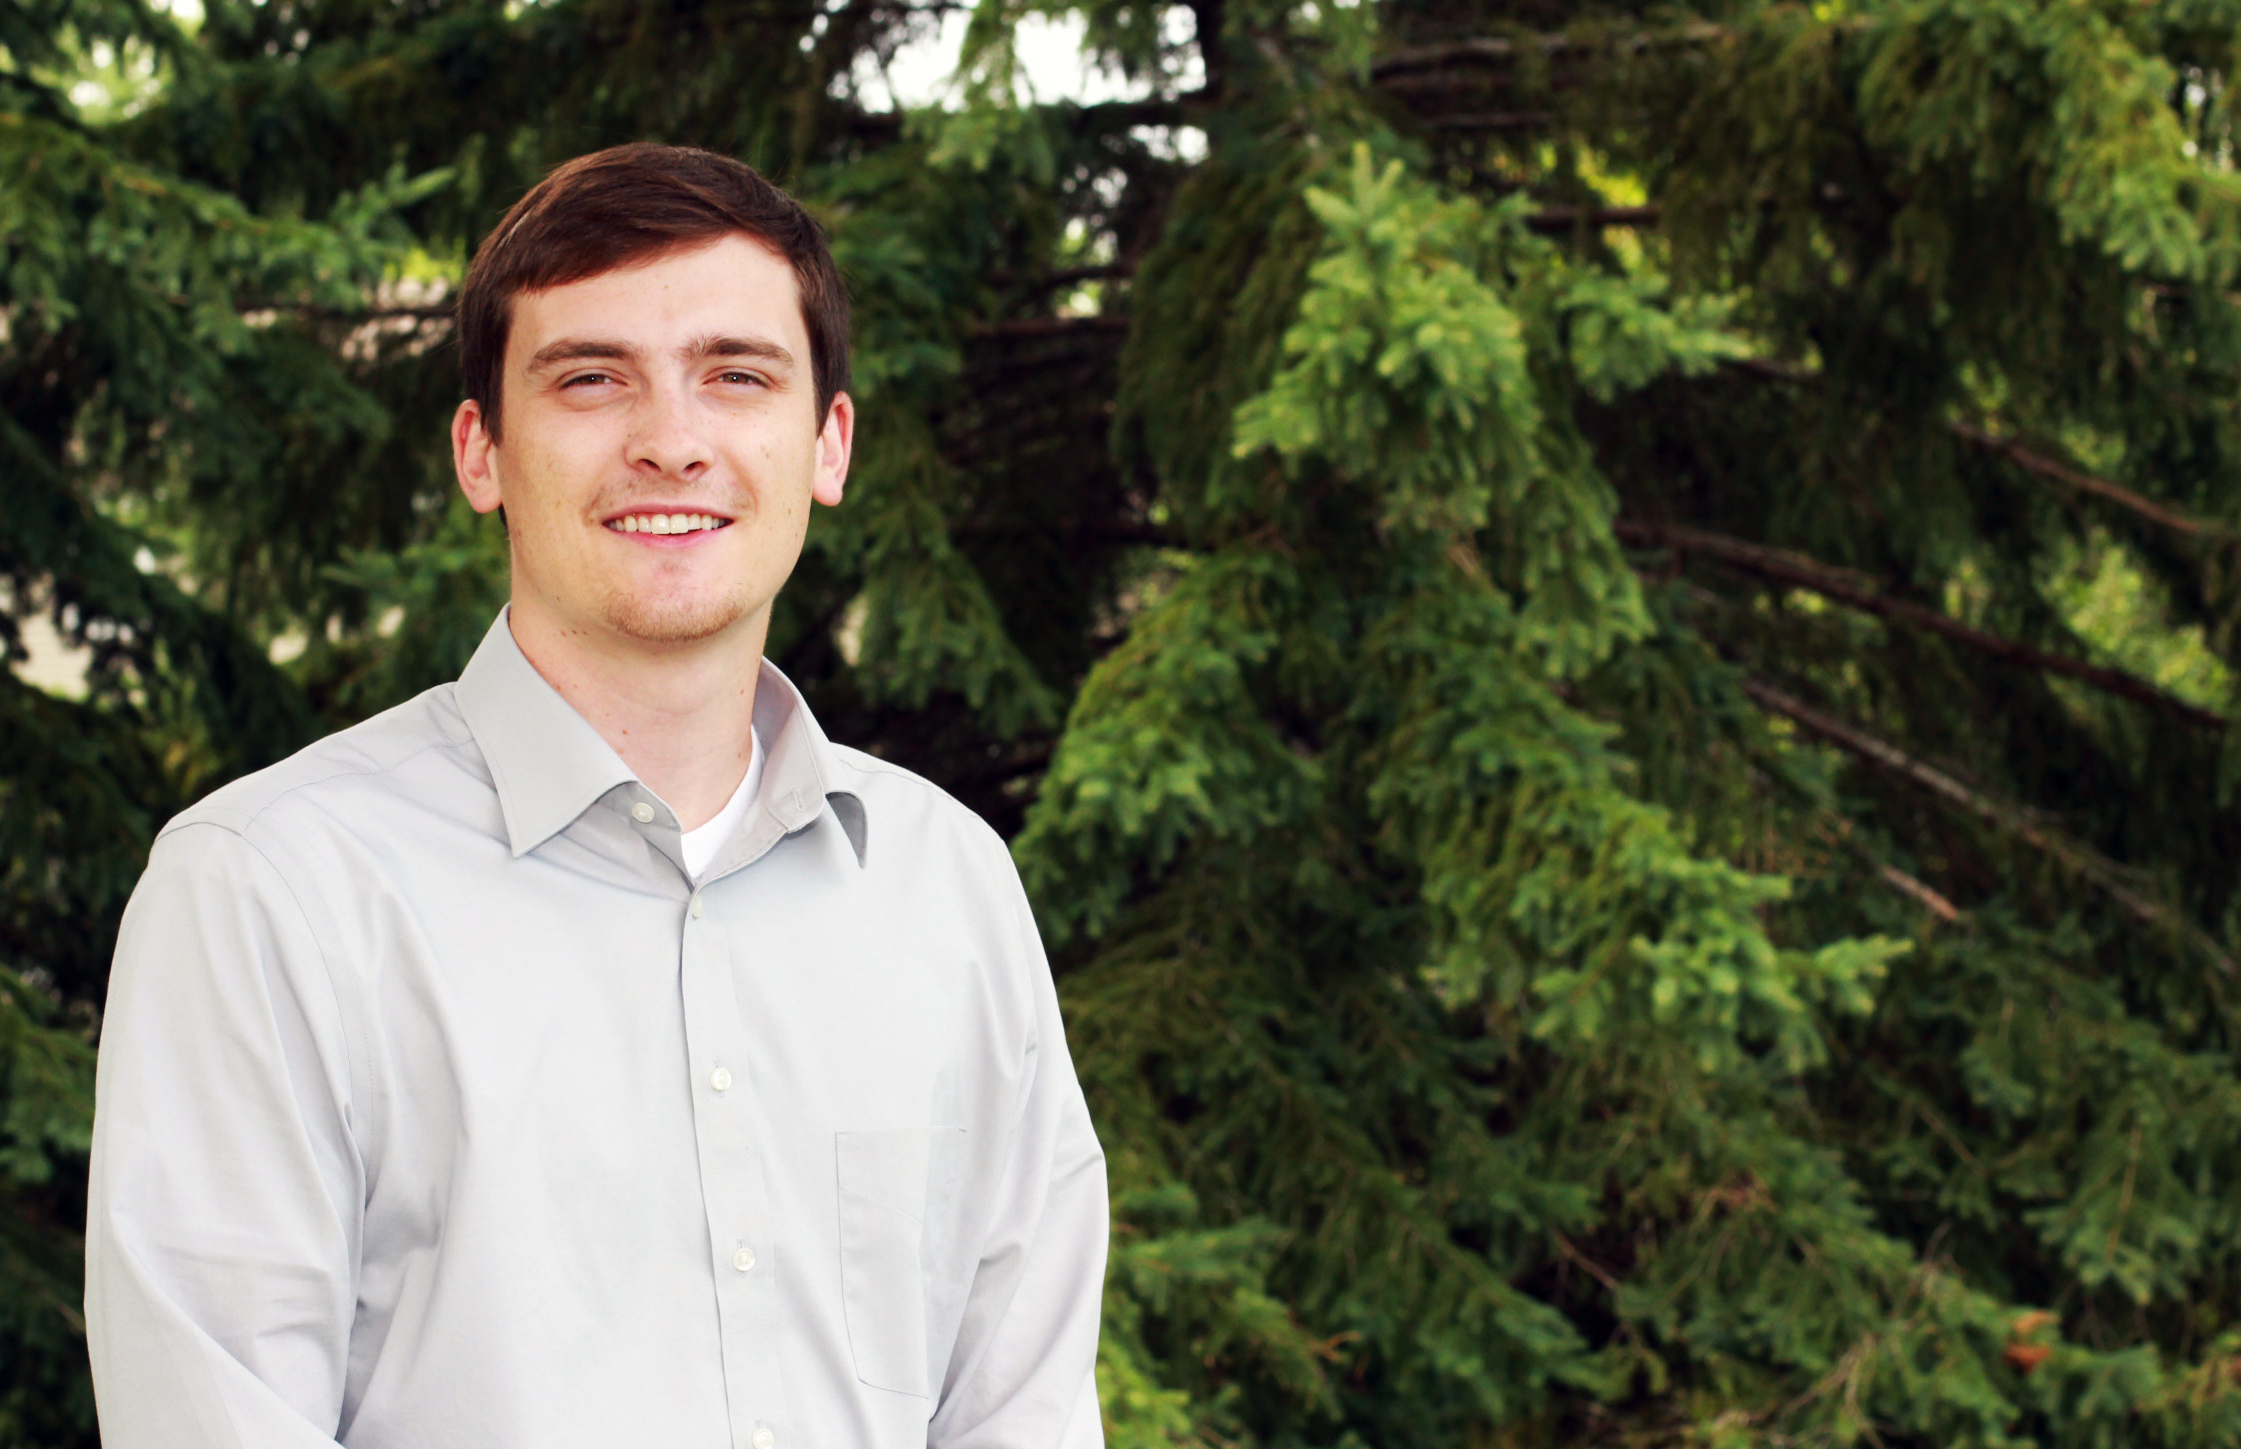 Kevin Olson - MECHANICAL ENGINEERKevin joined HEI in 2018. He is a recent graduate of the University of Minnesota - Duluth, and holds a Bachelor of Science in Mechanical Engineering.When not at HEI: I enjoy going to the cabin, getting together with friends, playing golf, basketball and other sports.